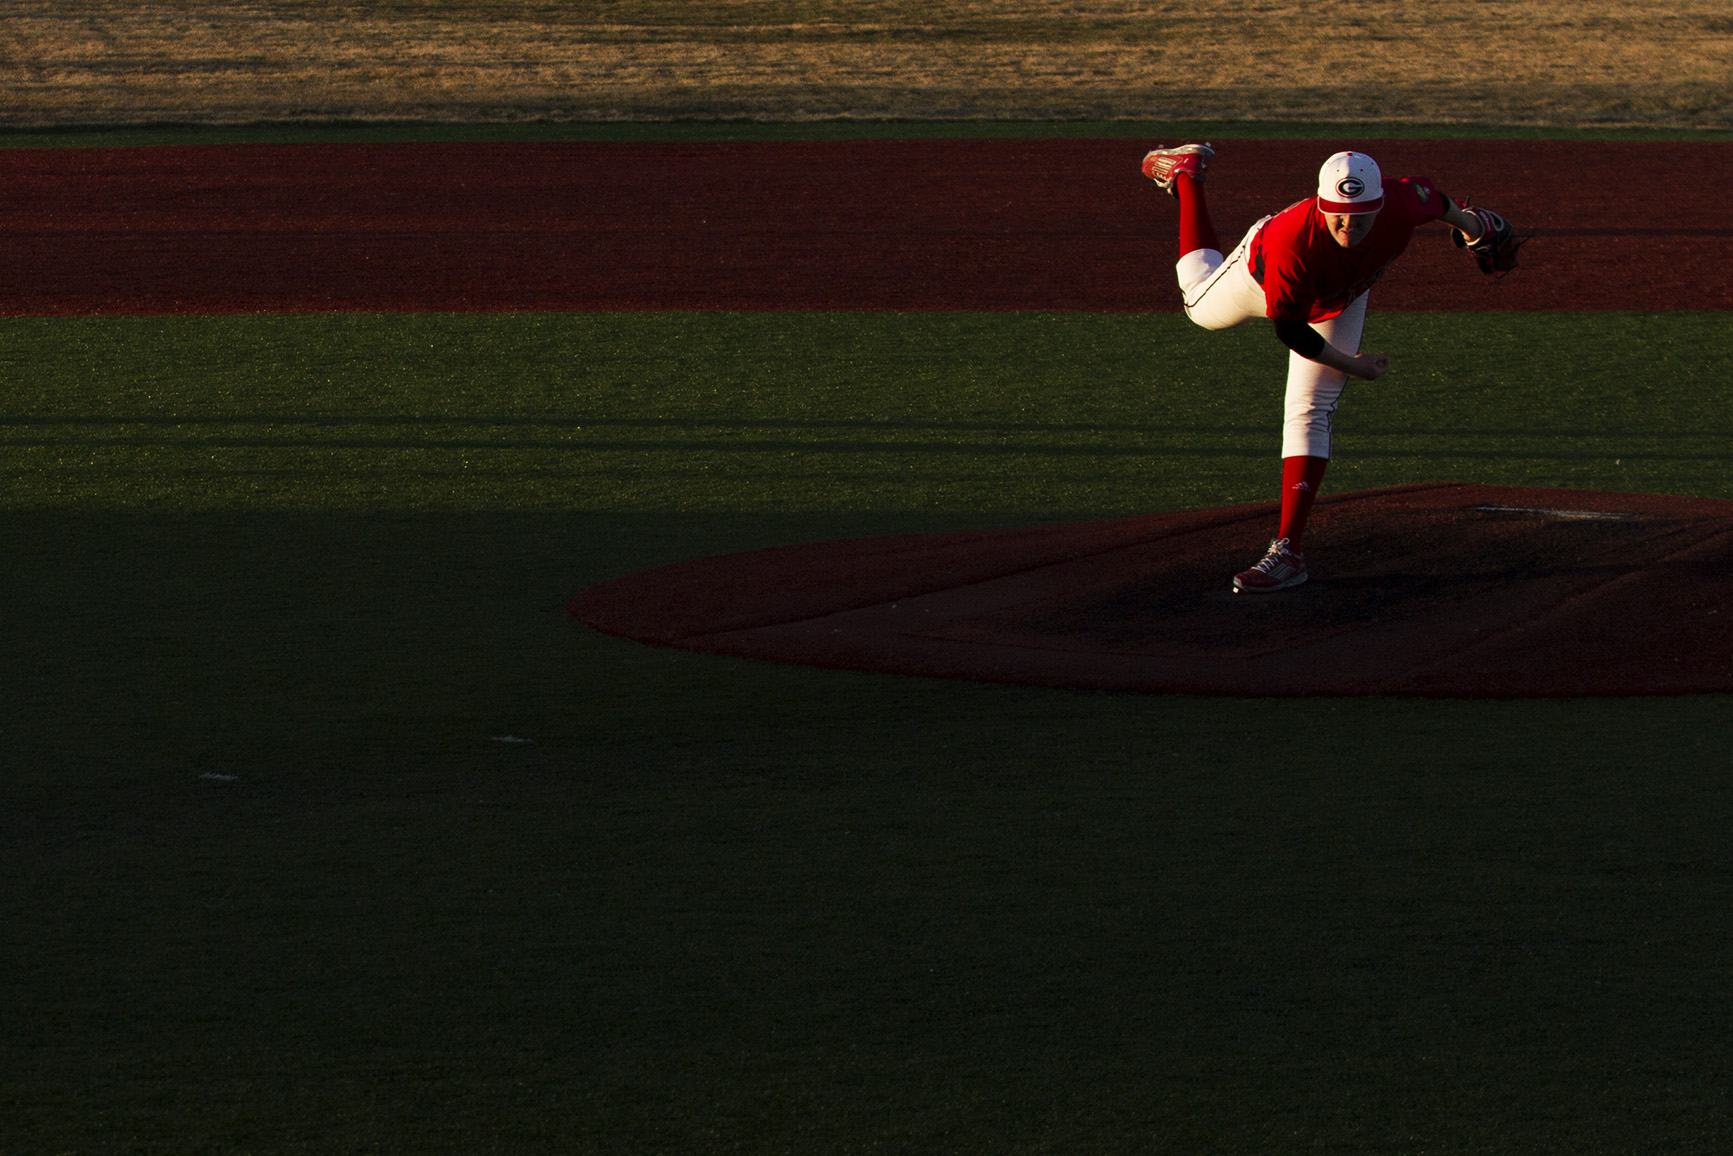 Gillette's Josh Kuhbacher throws a pitch to the Sturgis Scoopers during the Roughriders' 7-0 win over the Scoopers in their season opener at Hladky Memorial Stadium on April 7, 2016.